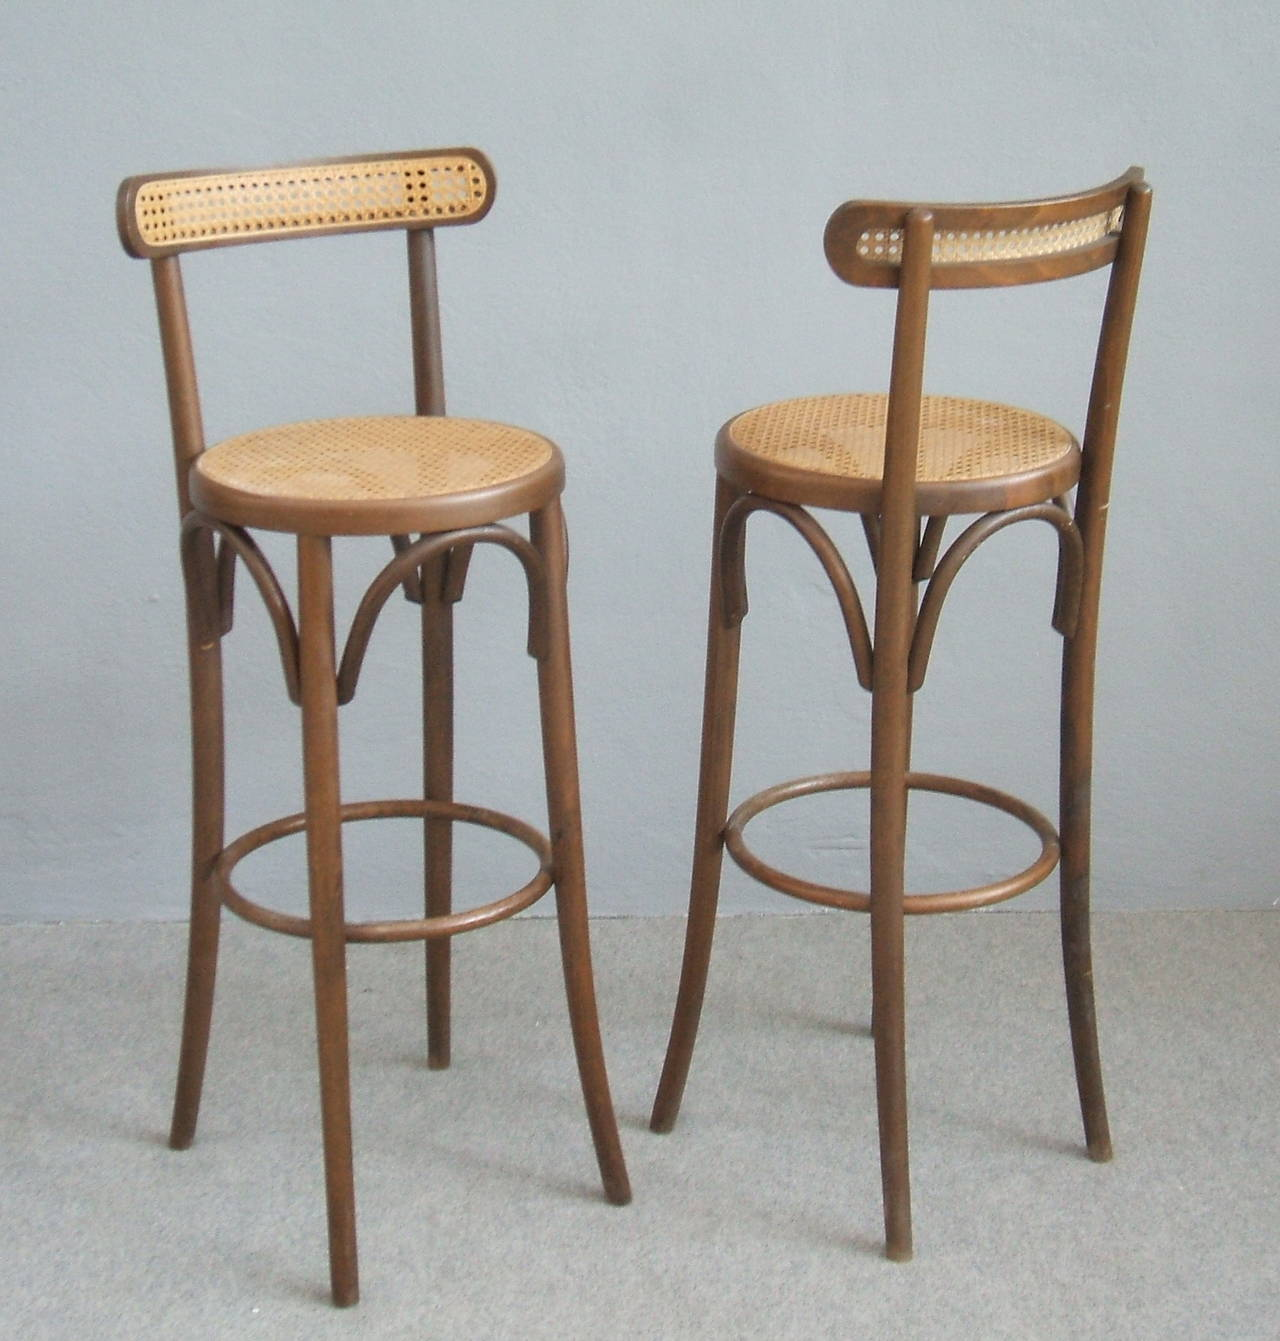 Pair Of Bar Stools In The Thonet Style At 1stdibs